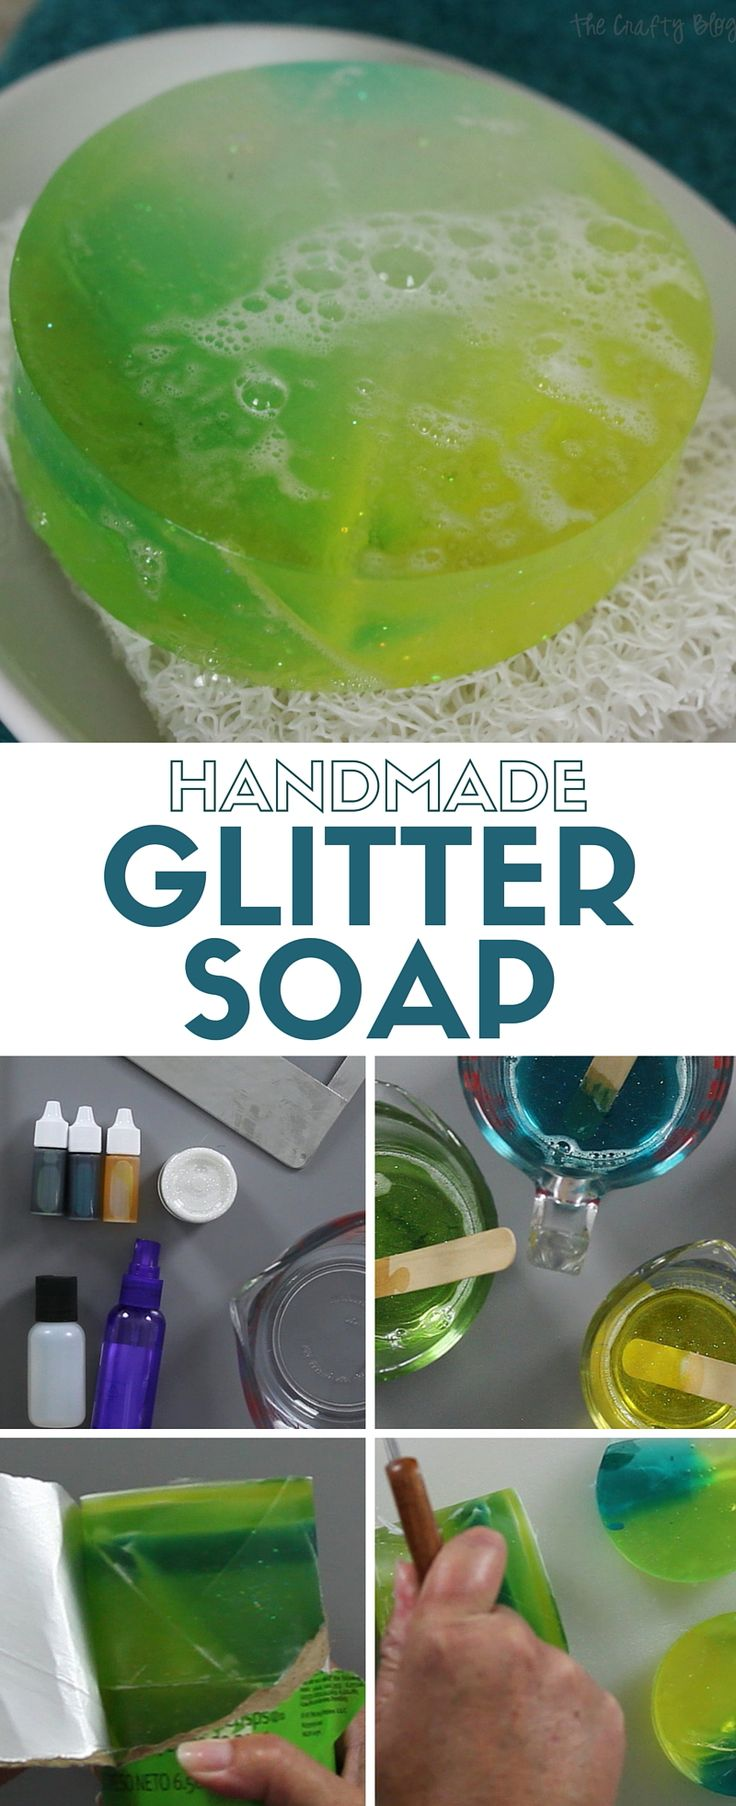 Learn how to make handmade soap with this easy to follow tutorial and video. Add glitter and your favorite colors and scents for the perfect DIY gift.